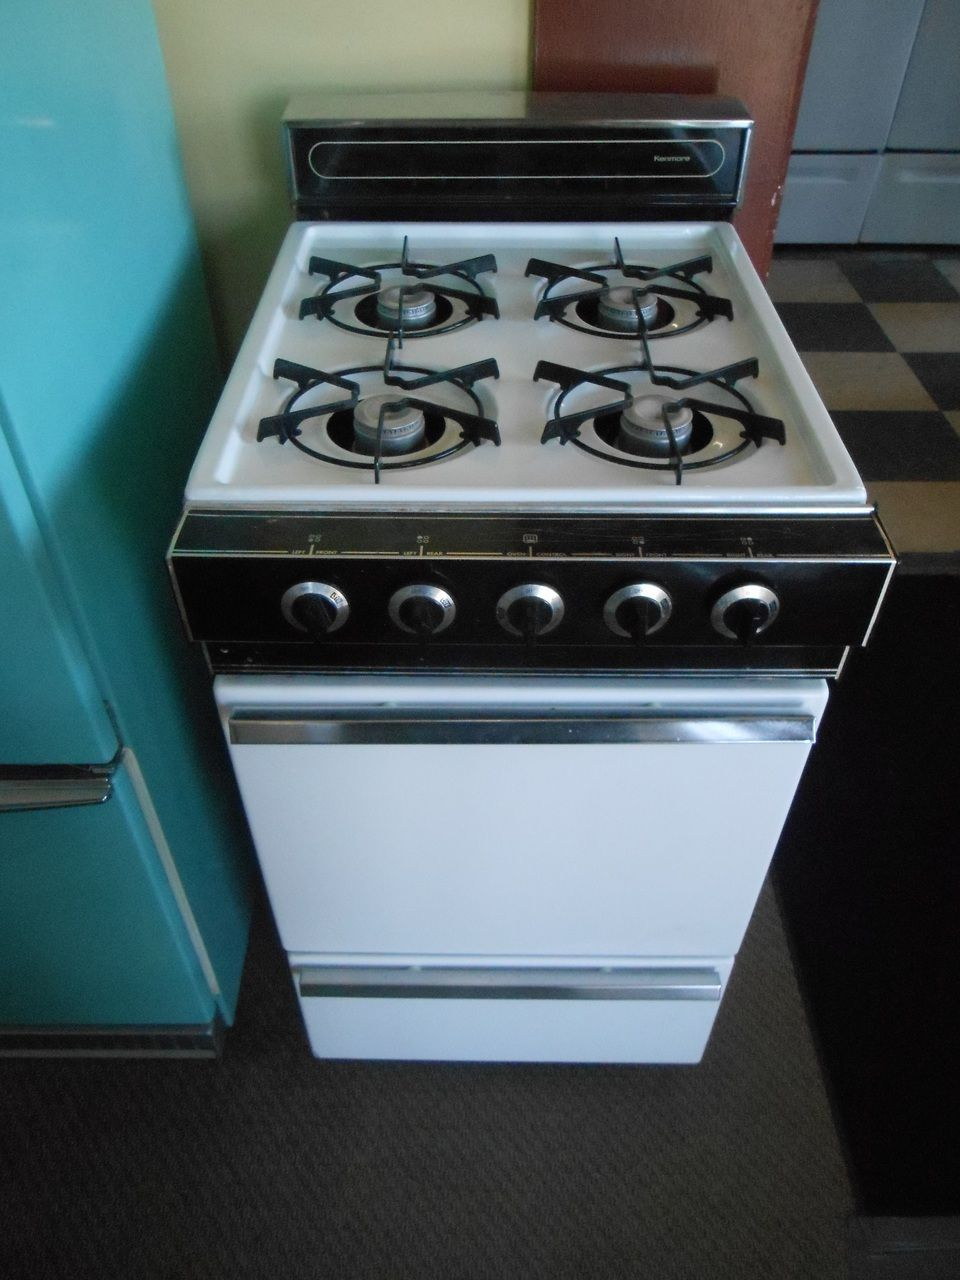 Pin by Appliance City on 20 INCH GAS RANGE | Pinterest